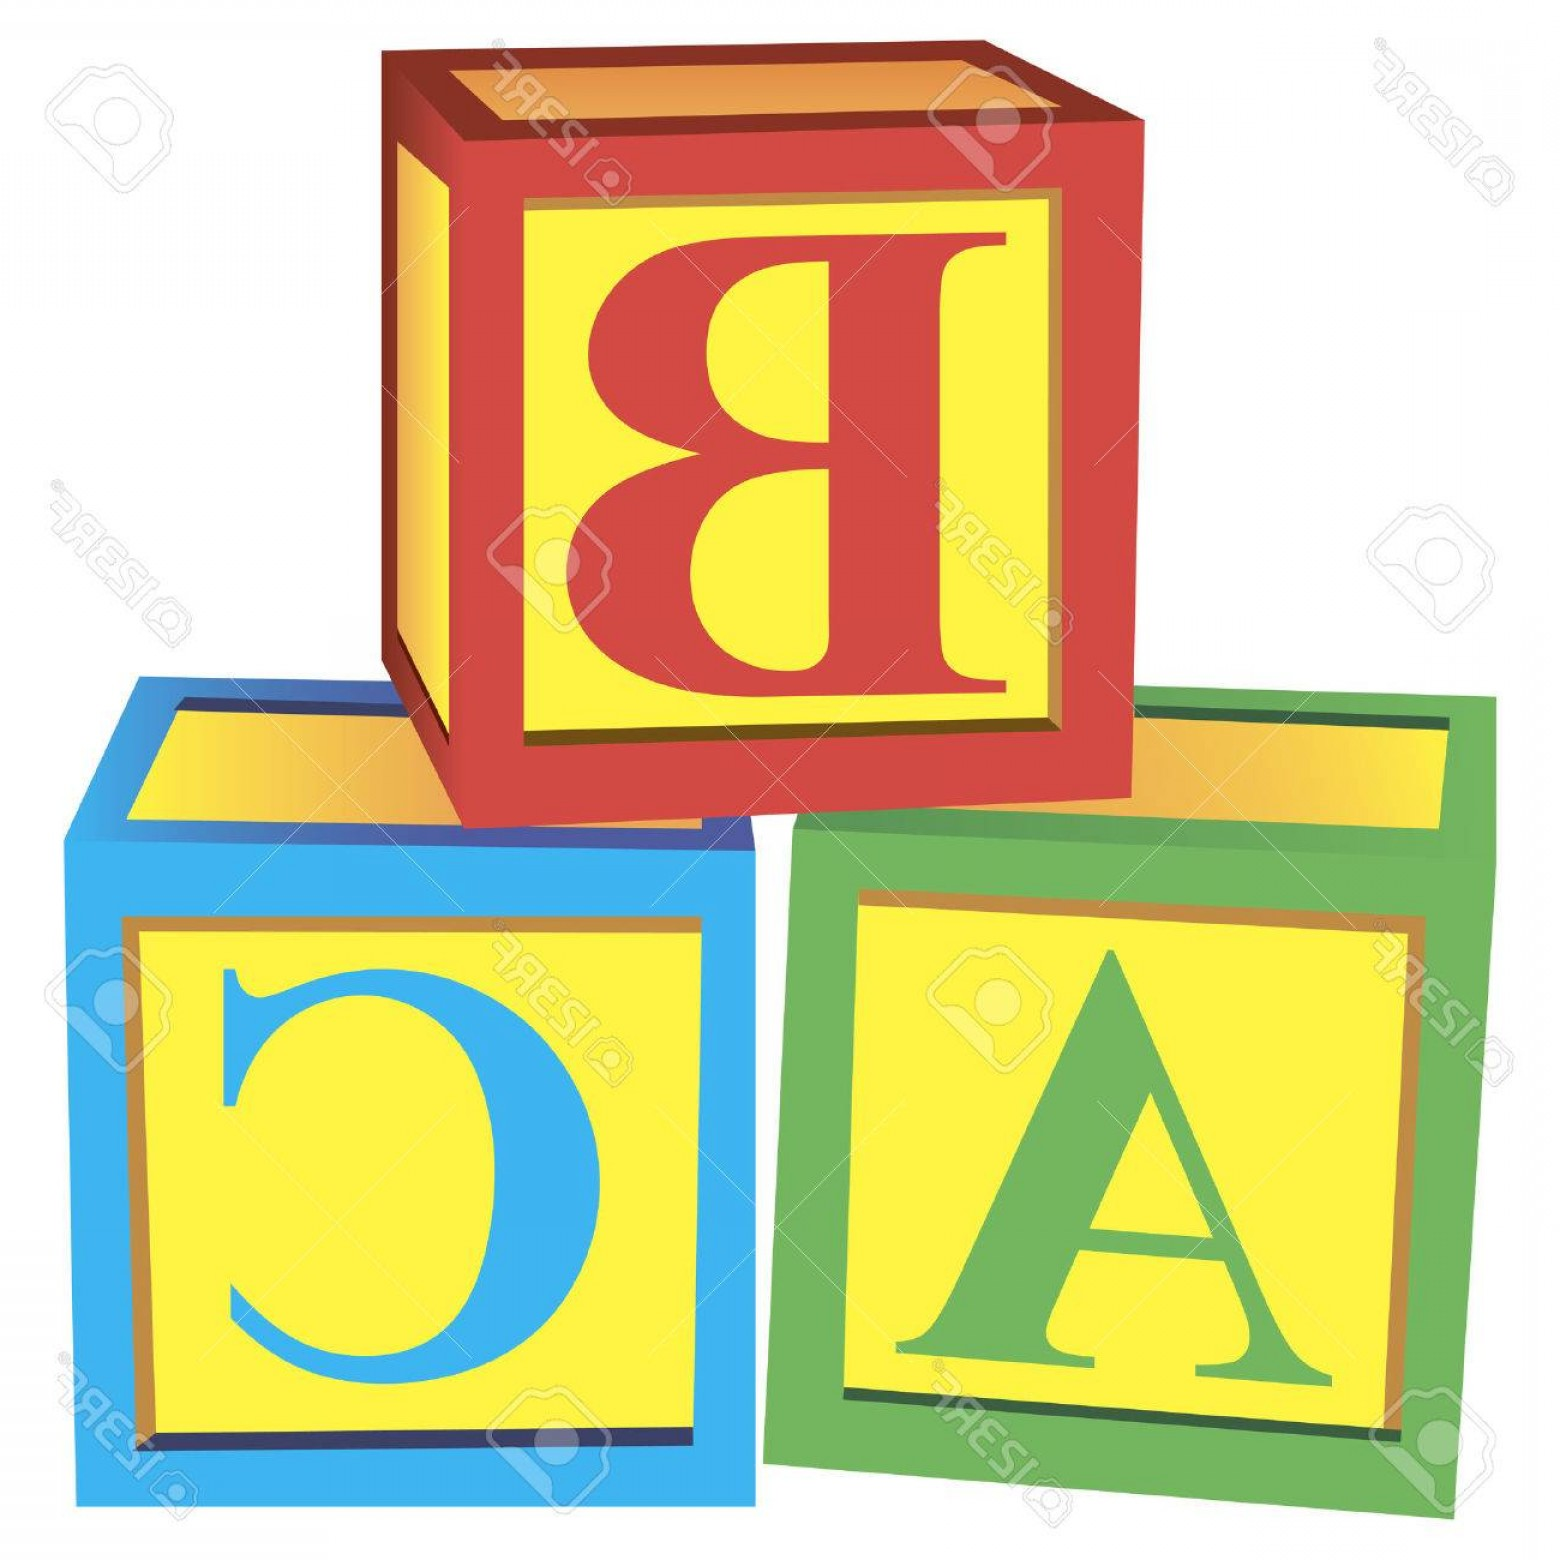 Vector Block Play: Photochildren With Alphabet Blocks For Learning And Play Vector Illustration